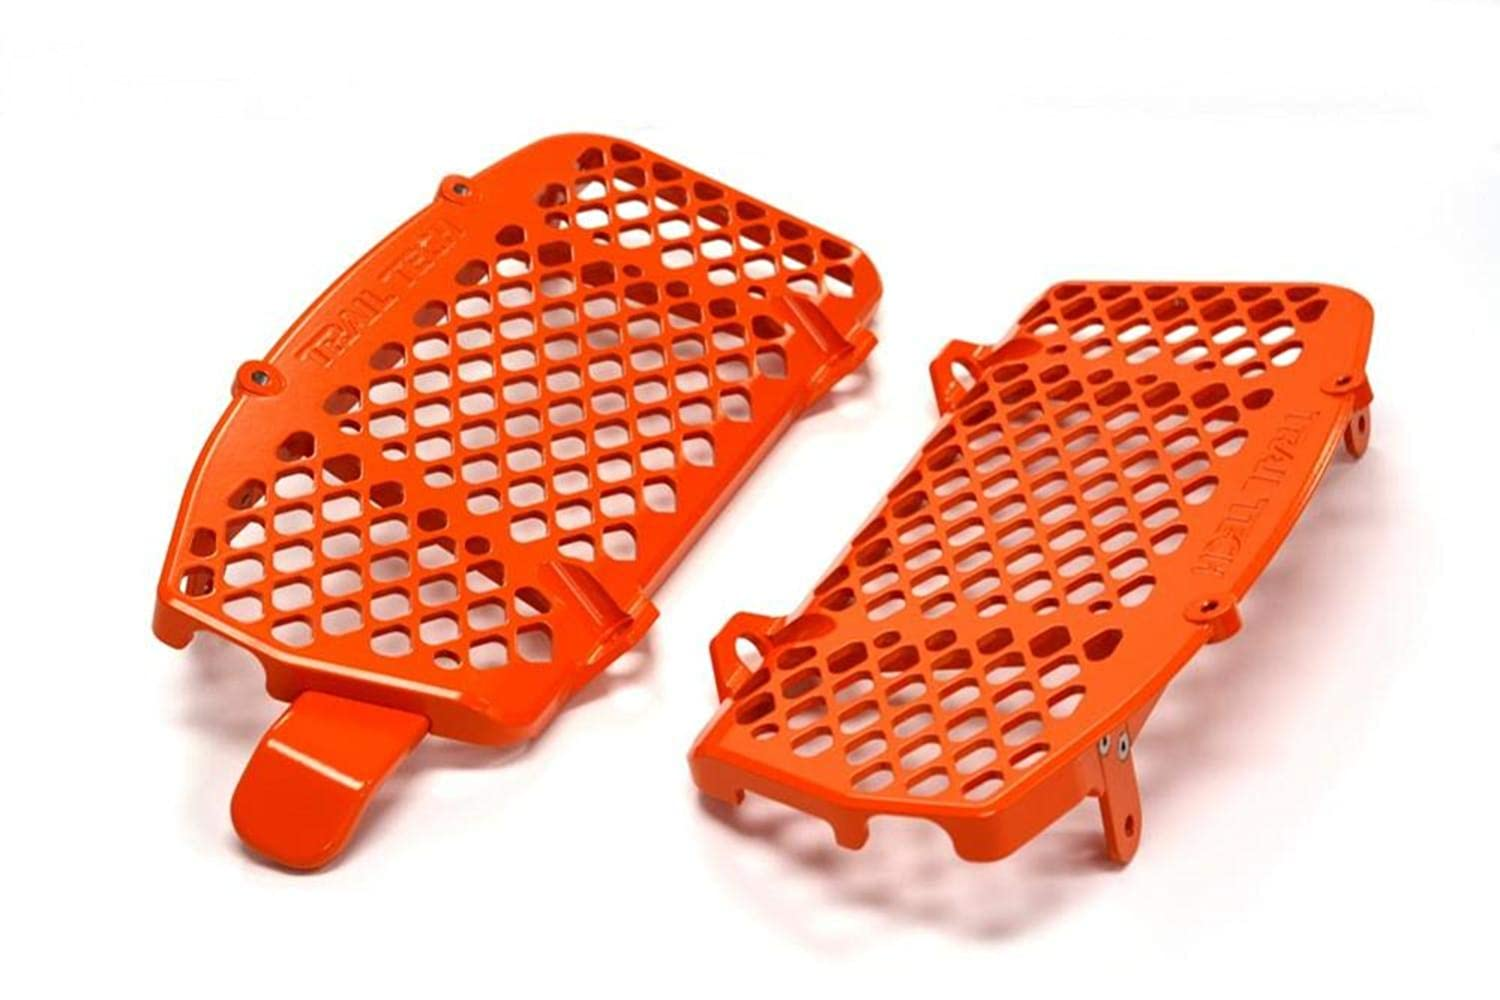 Trail Tech 0151-RB03 Orange Radiator Guard KTM Husqvarna 125 150 250 300 350 450 2016-2019